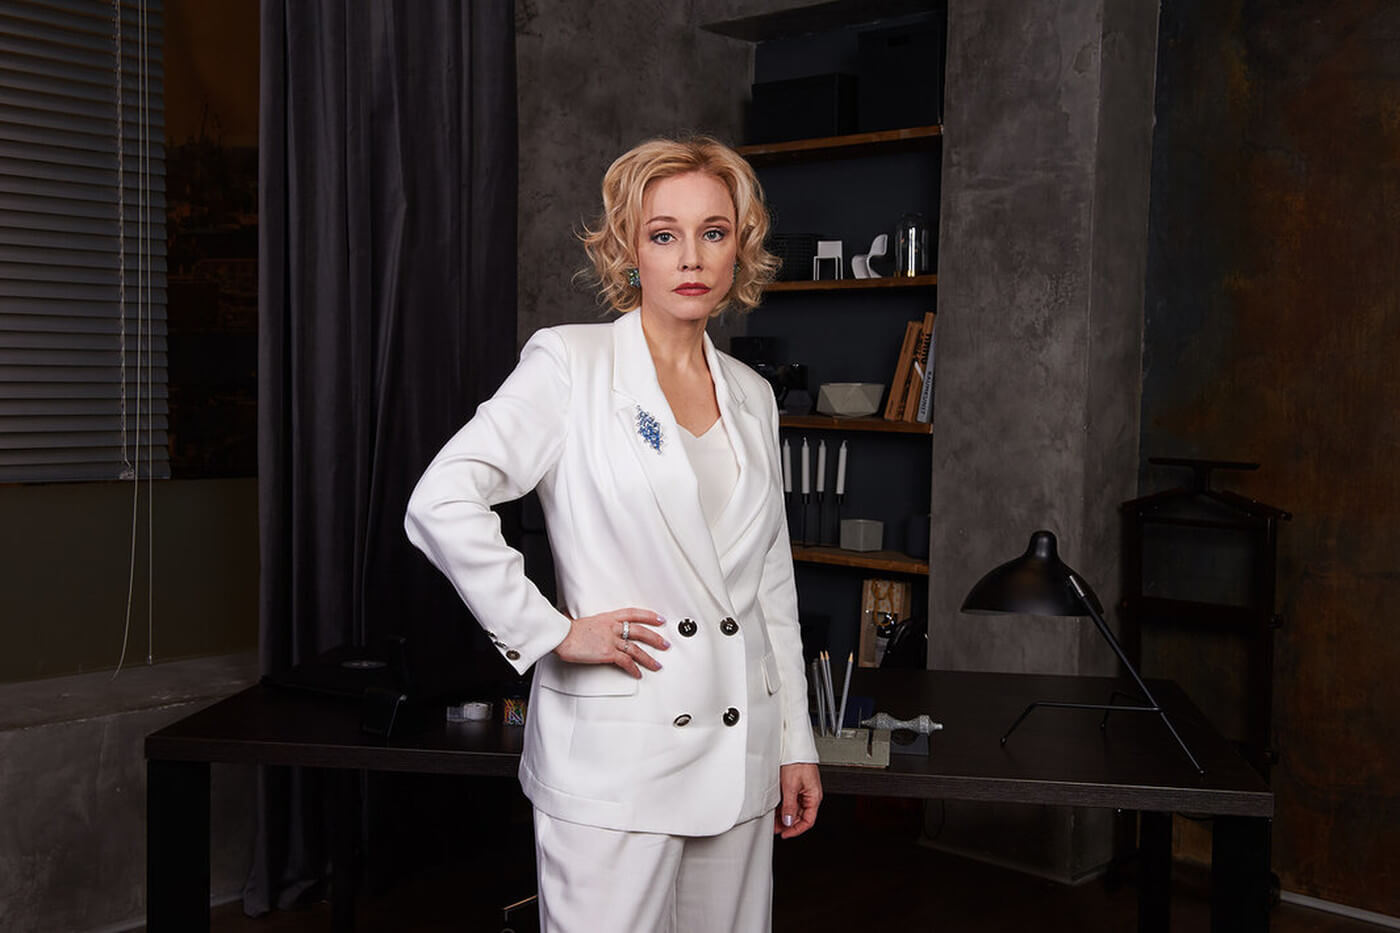 How much does Marina Zudina, dismissed from the Moscow Art Theater, earn?